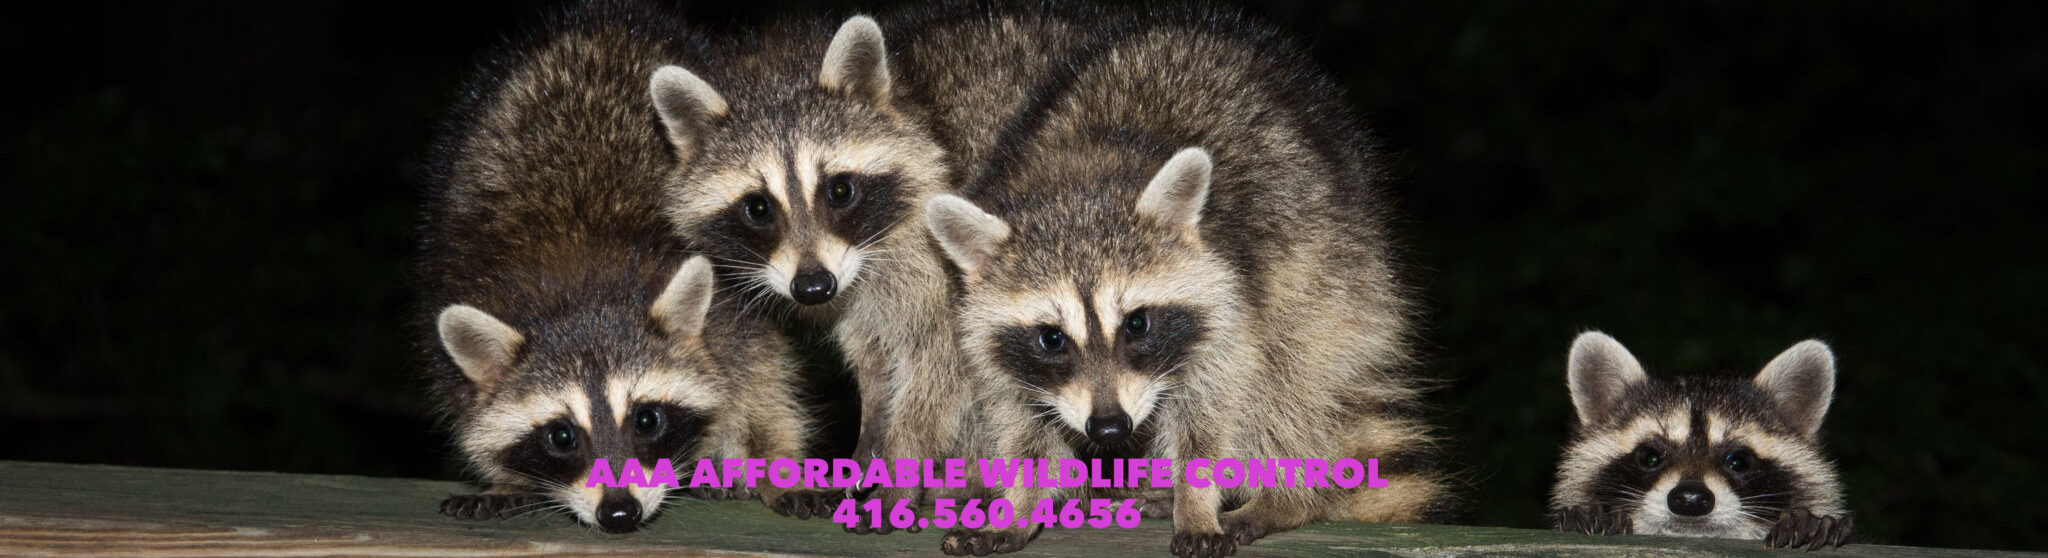 Wildlife Control, Wildlife Control Toronto, Wildlife Removal, Wildlife Removal Toronto, AAA Affordable Wildlife Control, Animal Removal Toronto, Best Wildlife Removal Companies